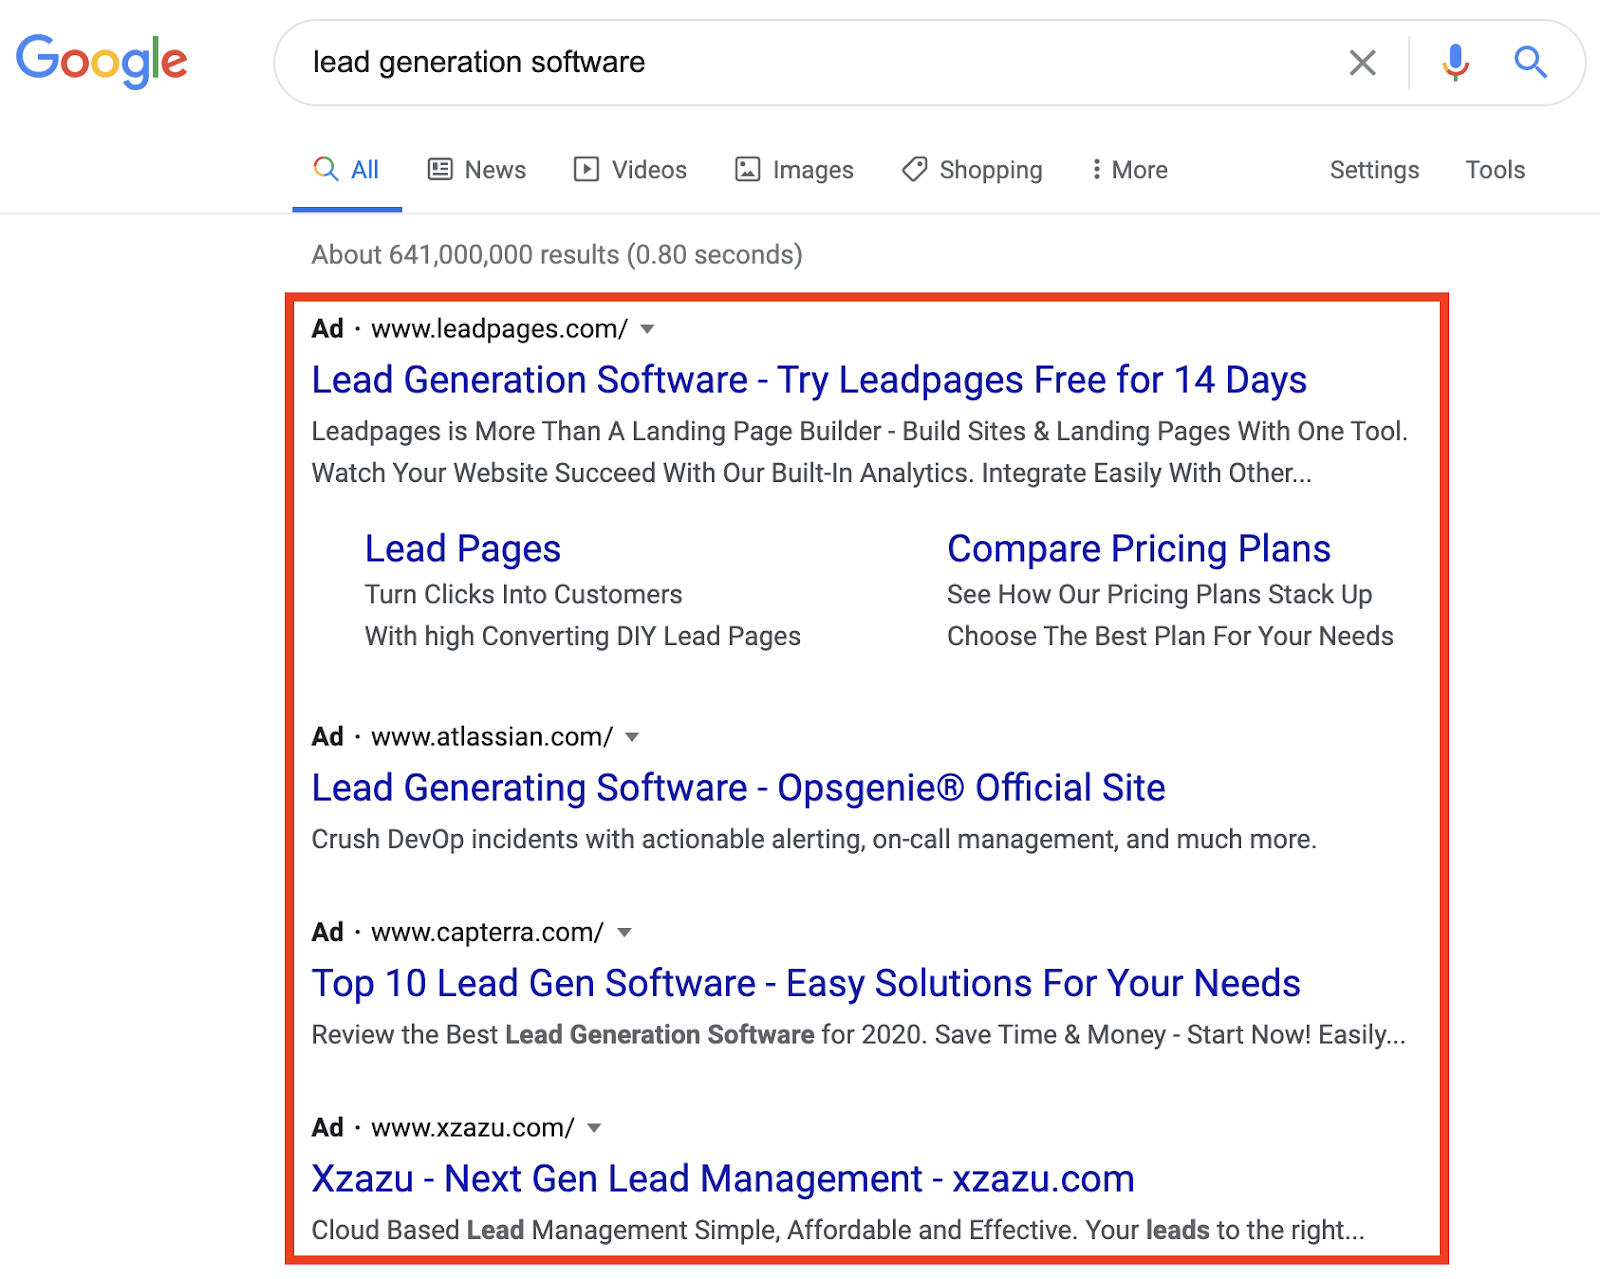 Ads for Lead Generation Software